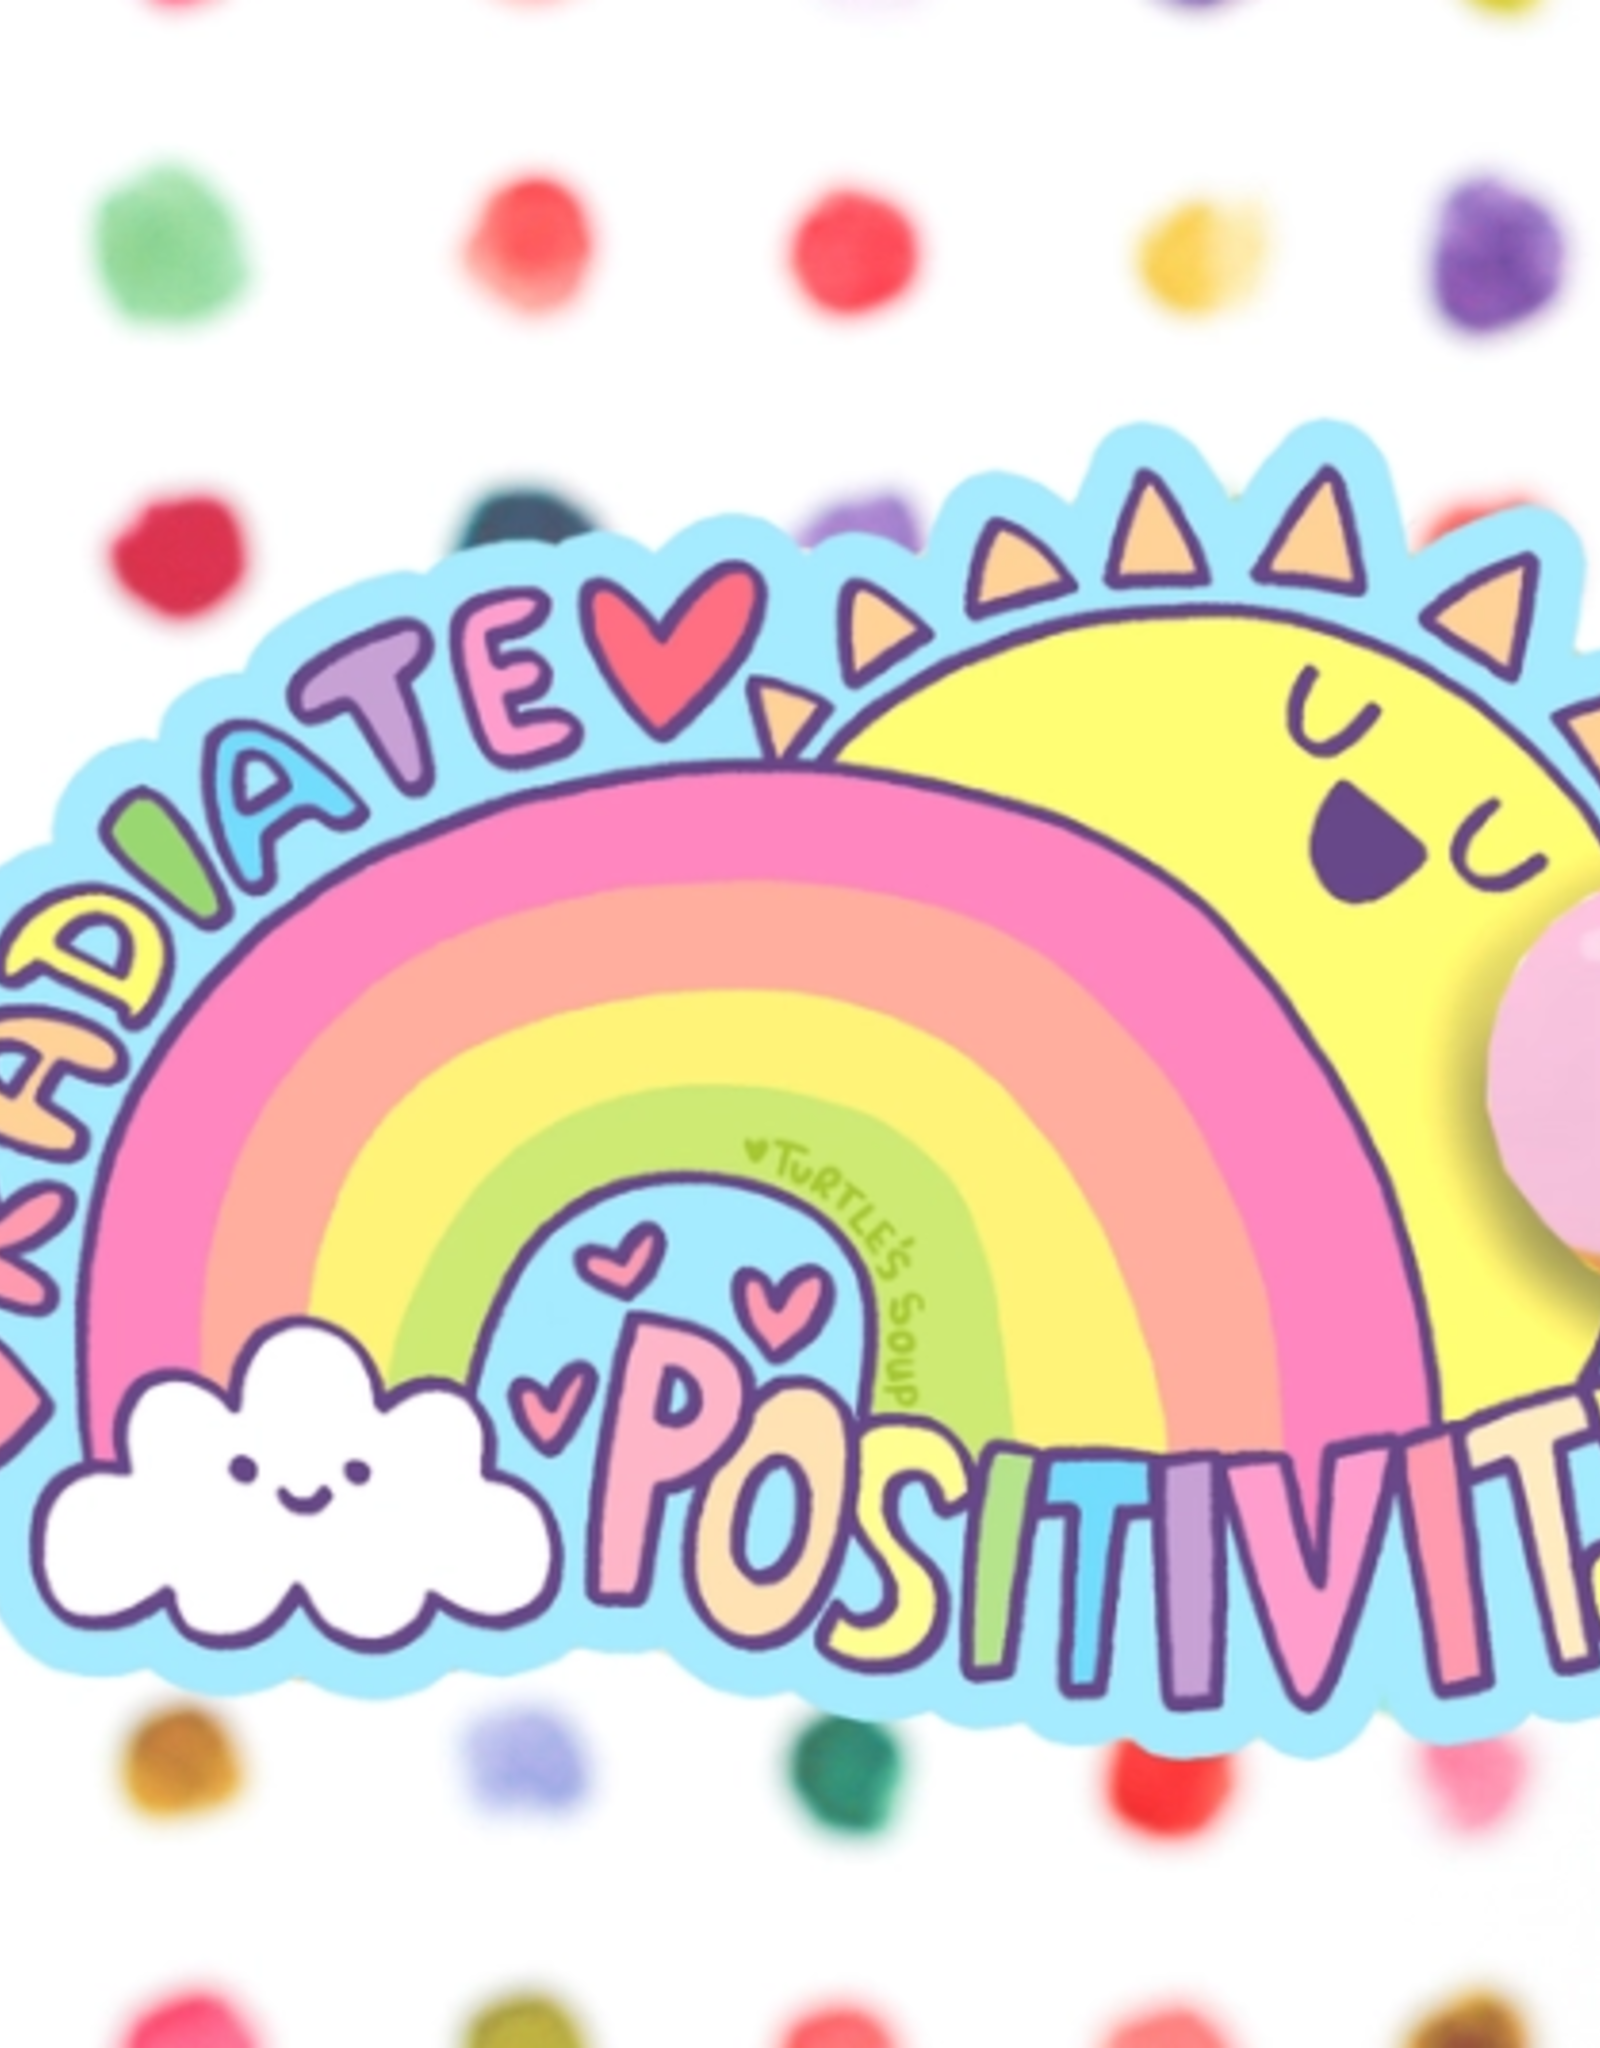 Turtle's Soup Radiate Positivity Vinyl Sticker